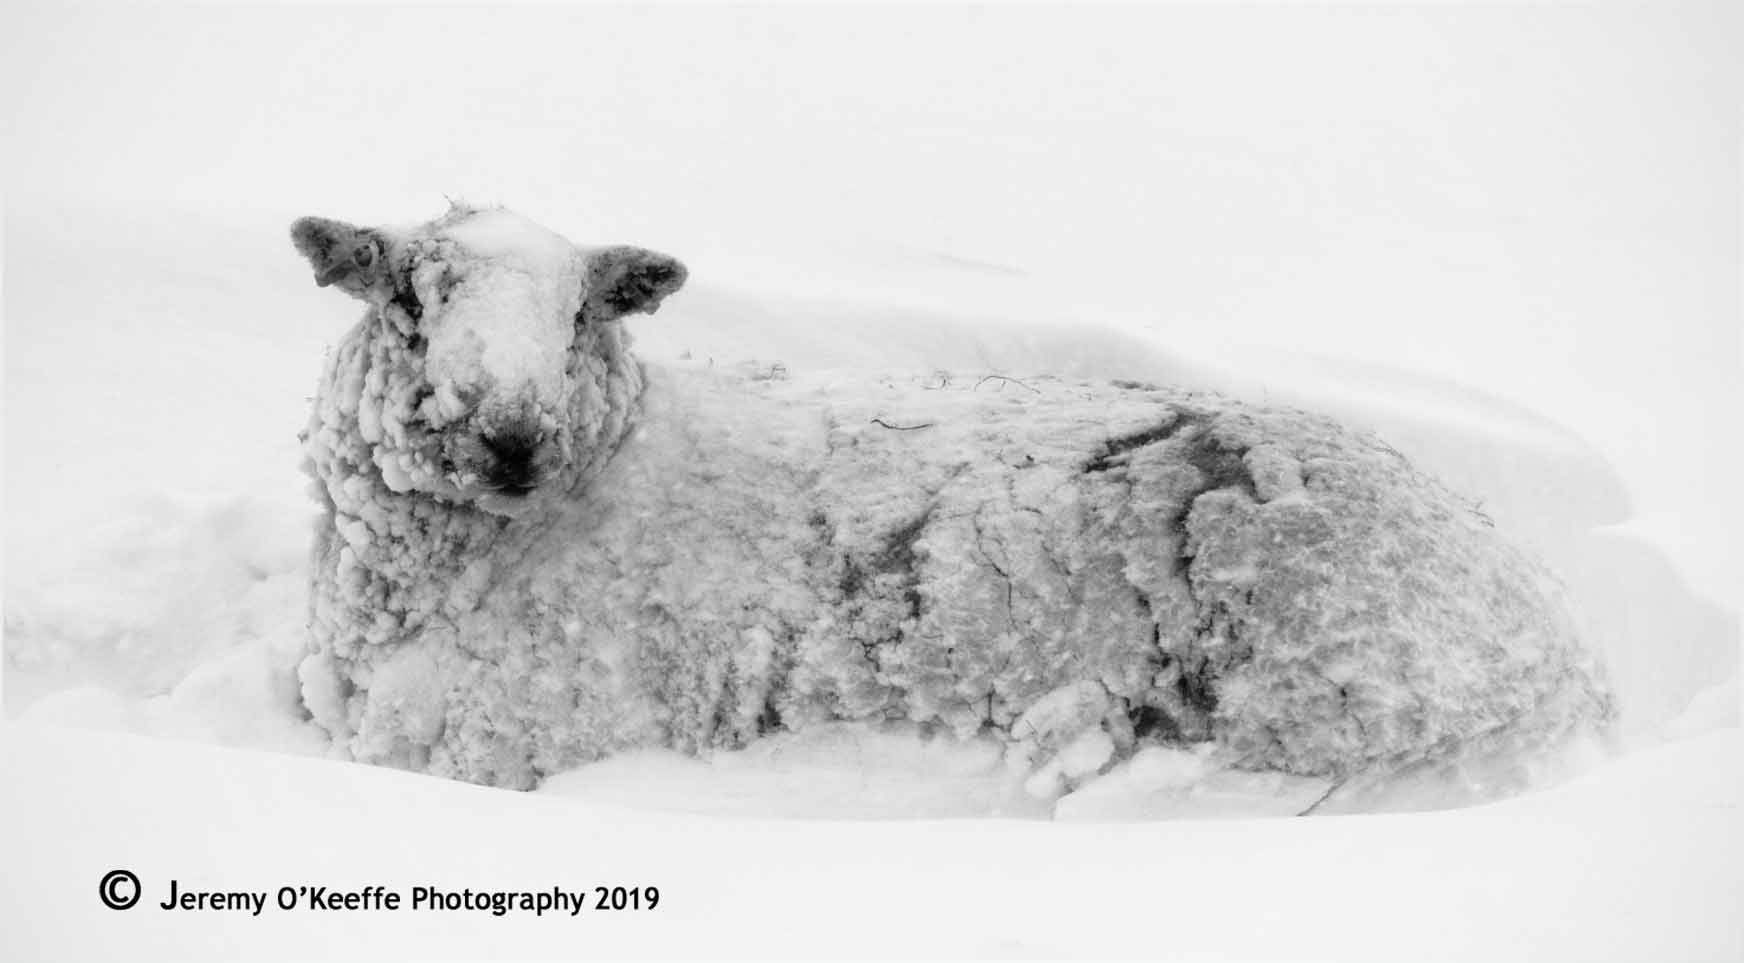 Sheep in deep snow